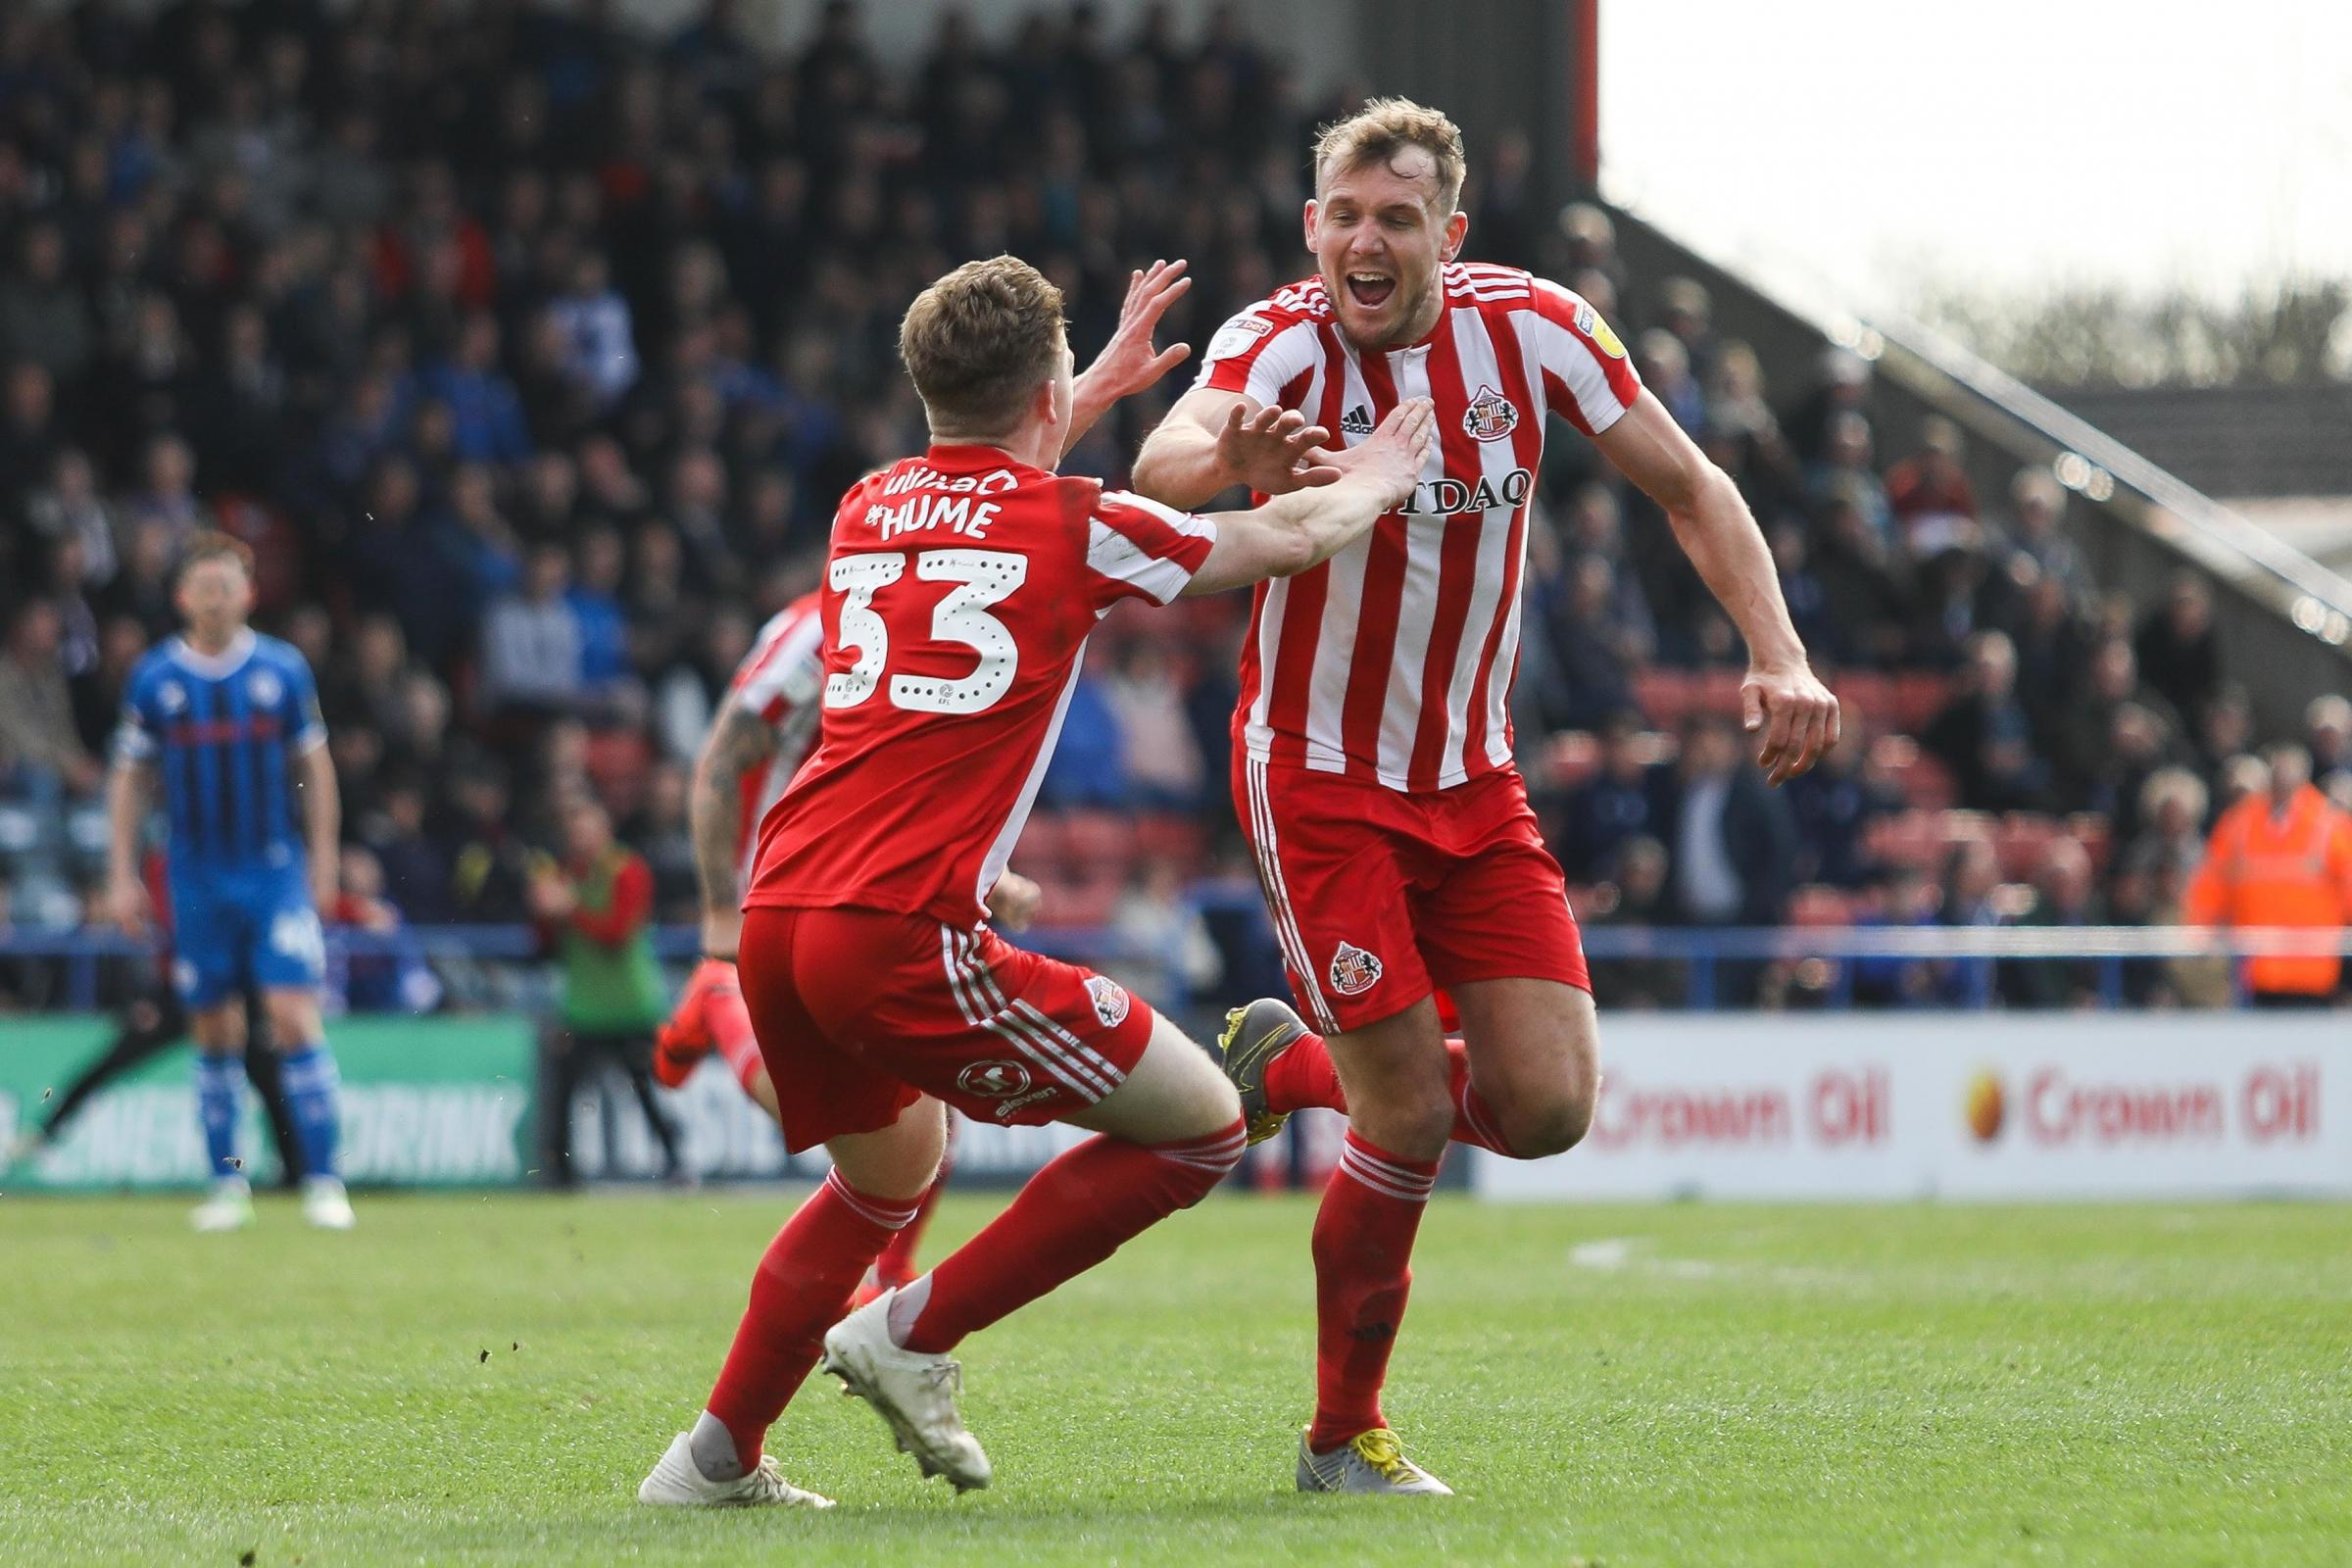 Charlie Wyke of Sunderland celebrates after scoring. Picture: MI News and Sport